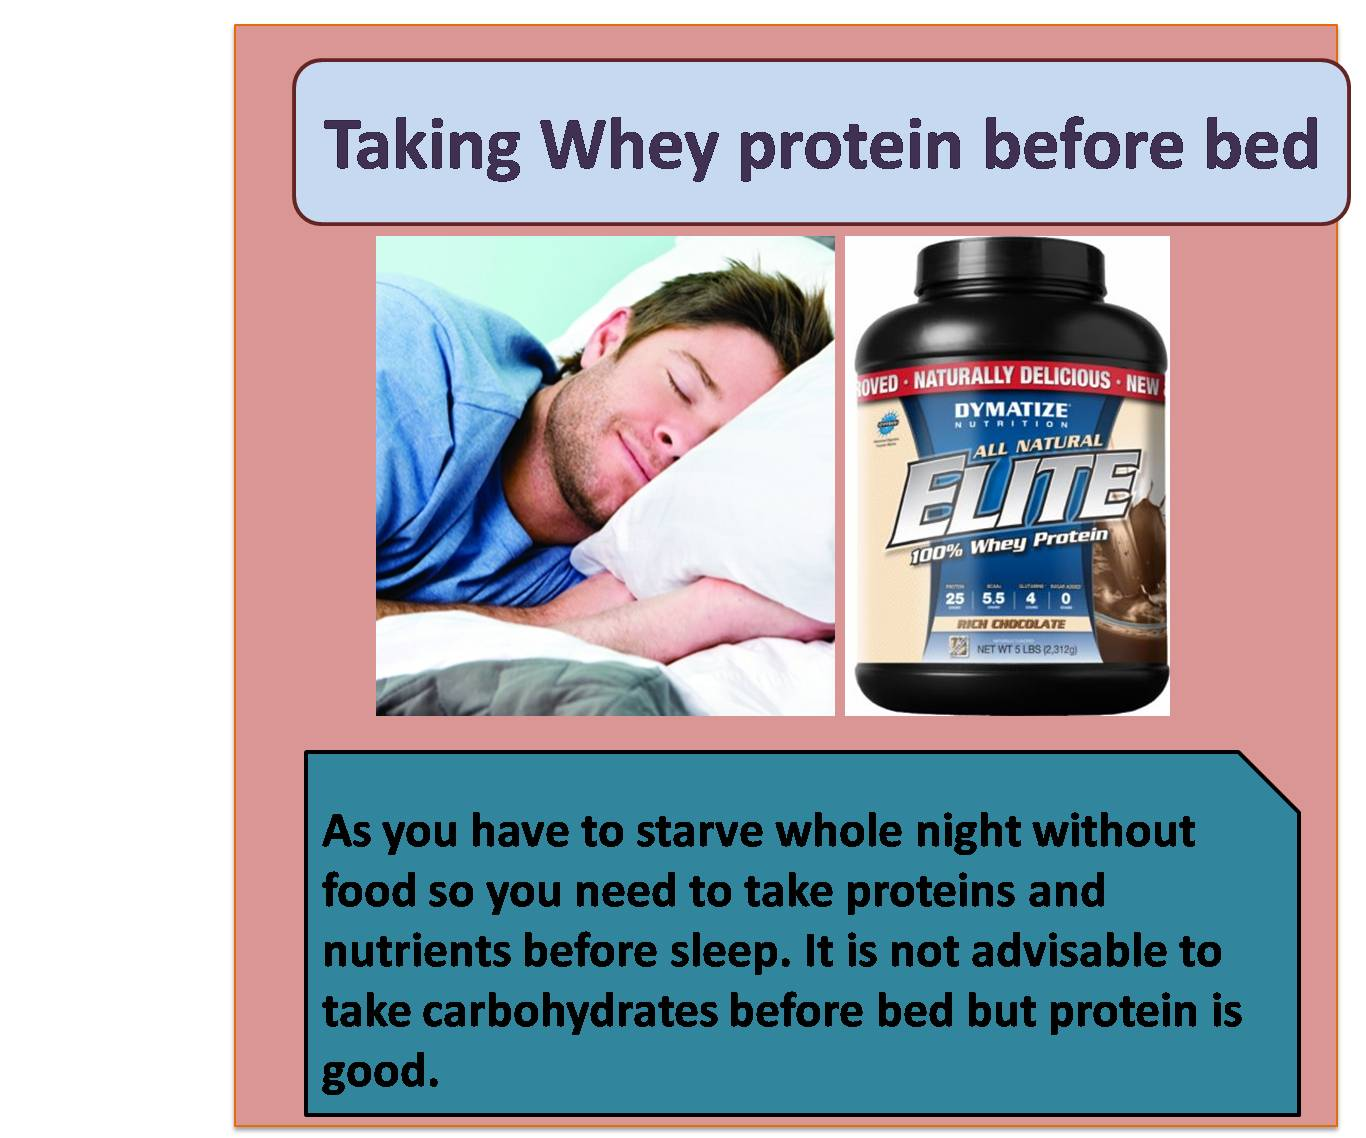 Taking Whey protein before bed